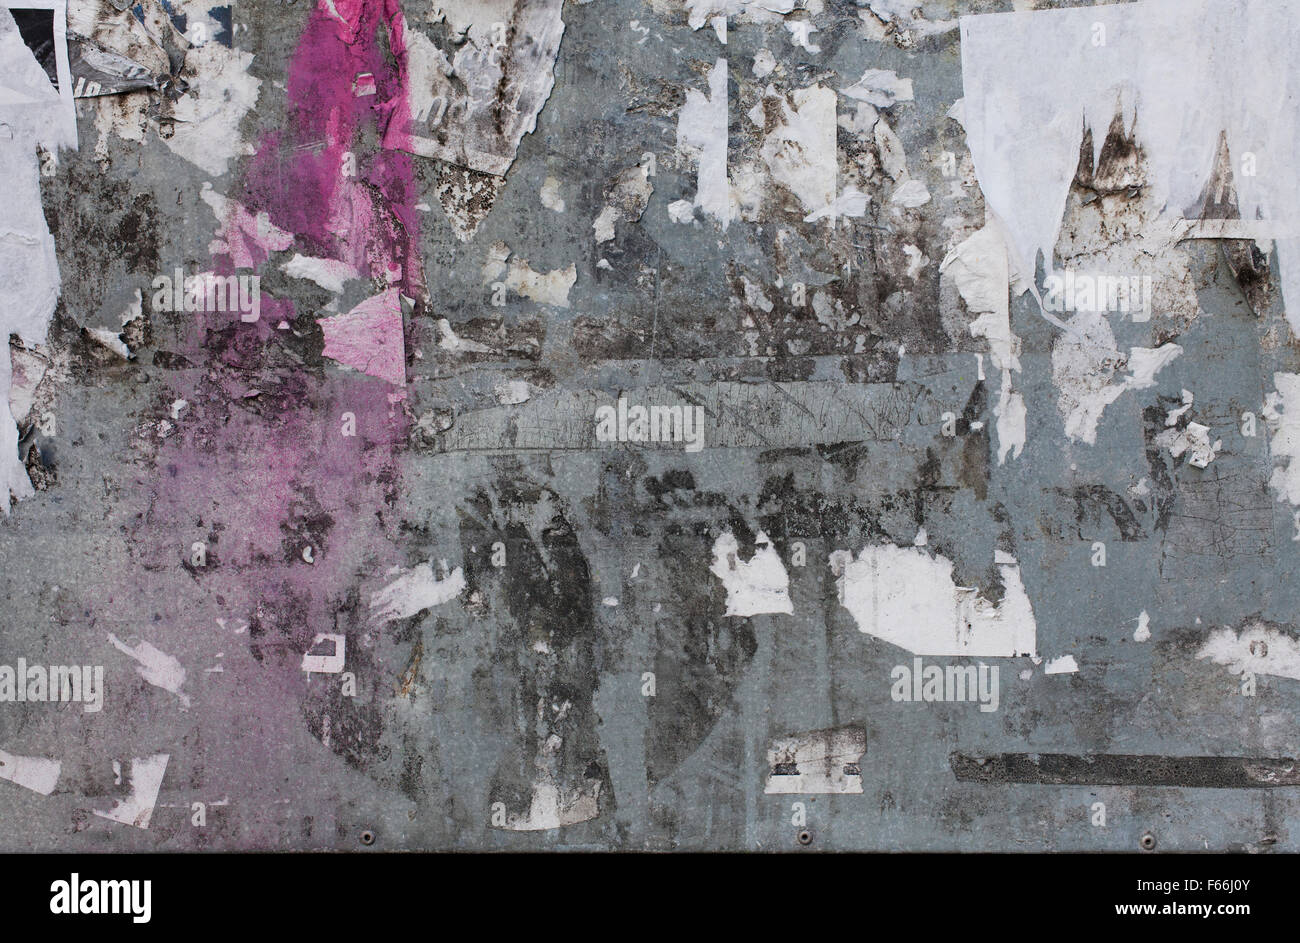 Grunge wall poster background - Stock Image